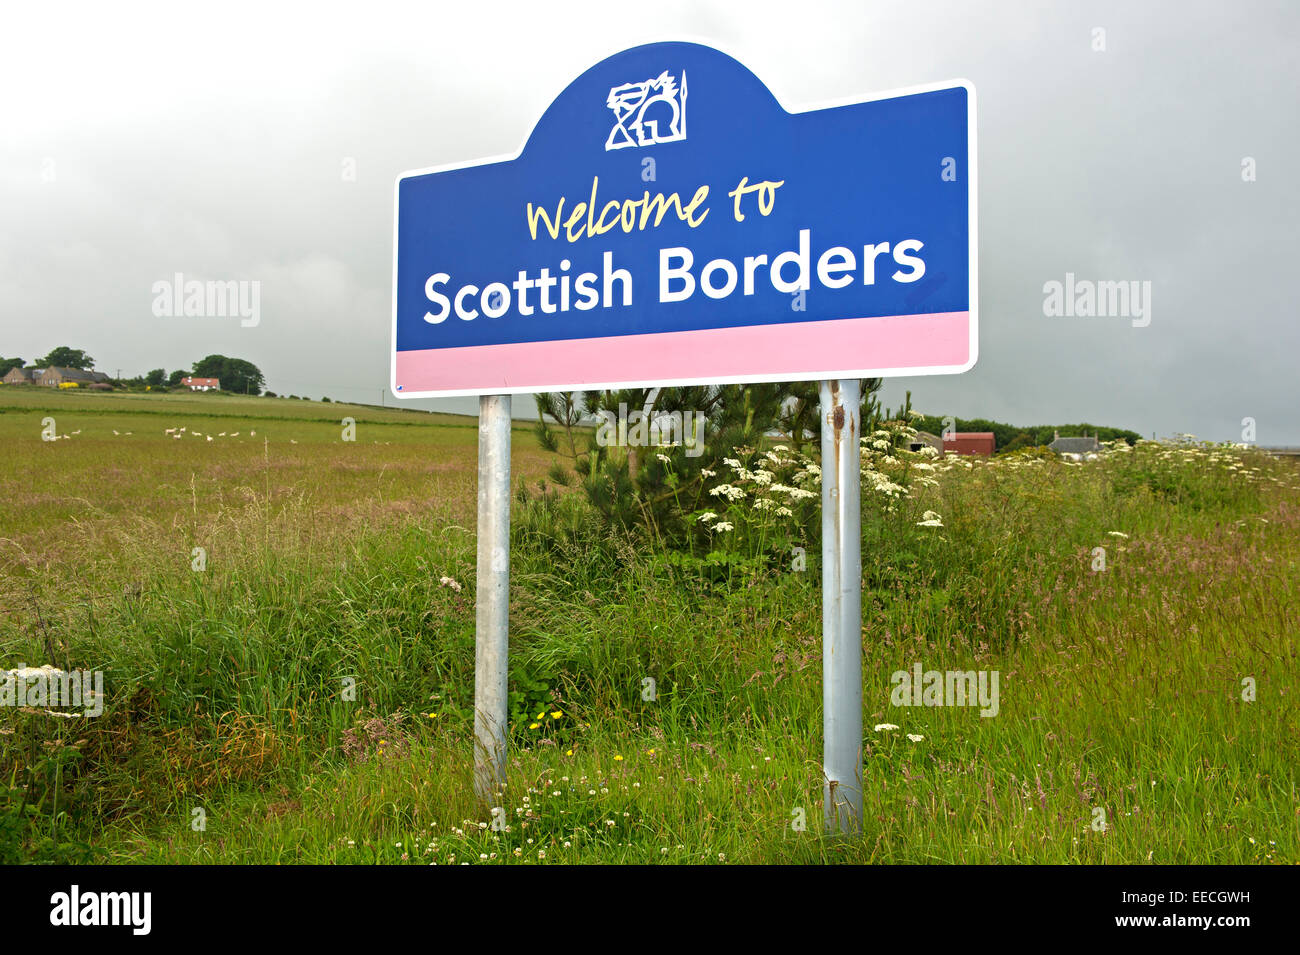 Welcome sign in the council area Scottish Borders near Lamberton, Scotland, United Kingdom - Stock Image